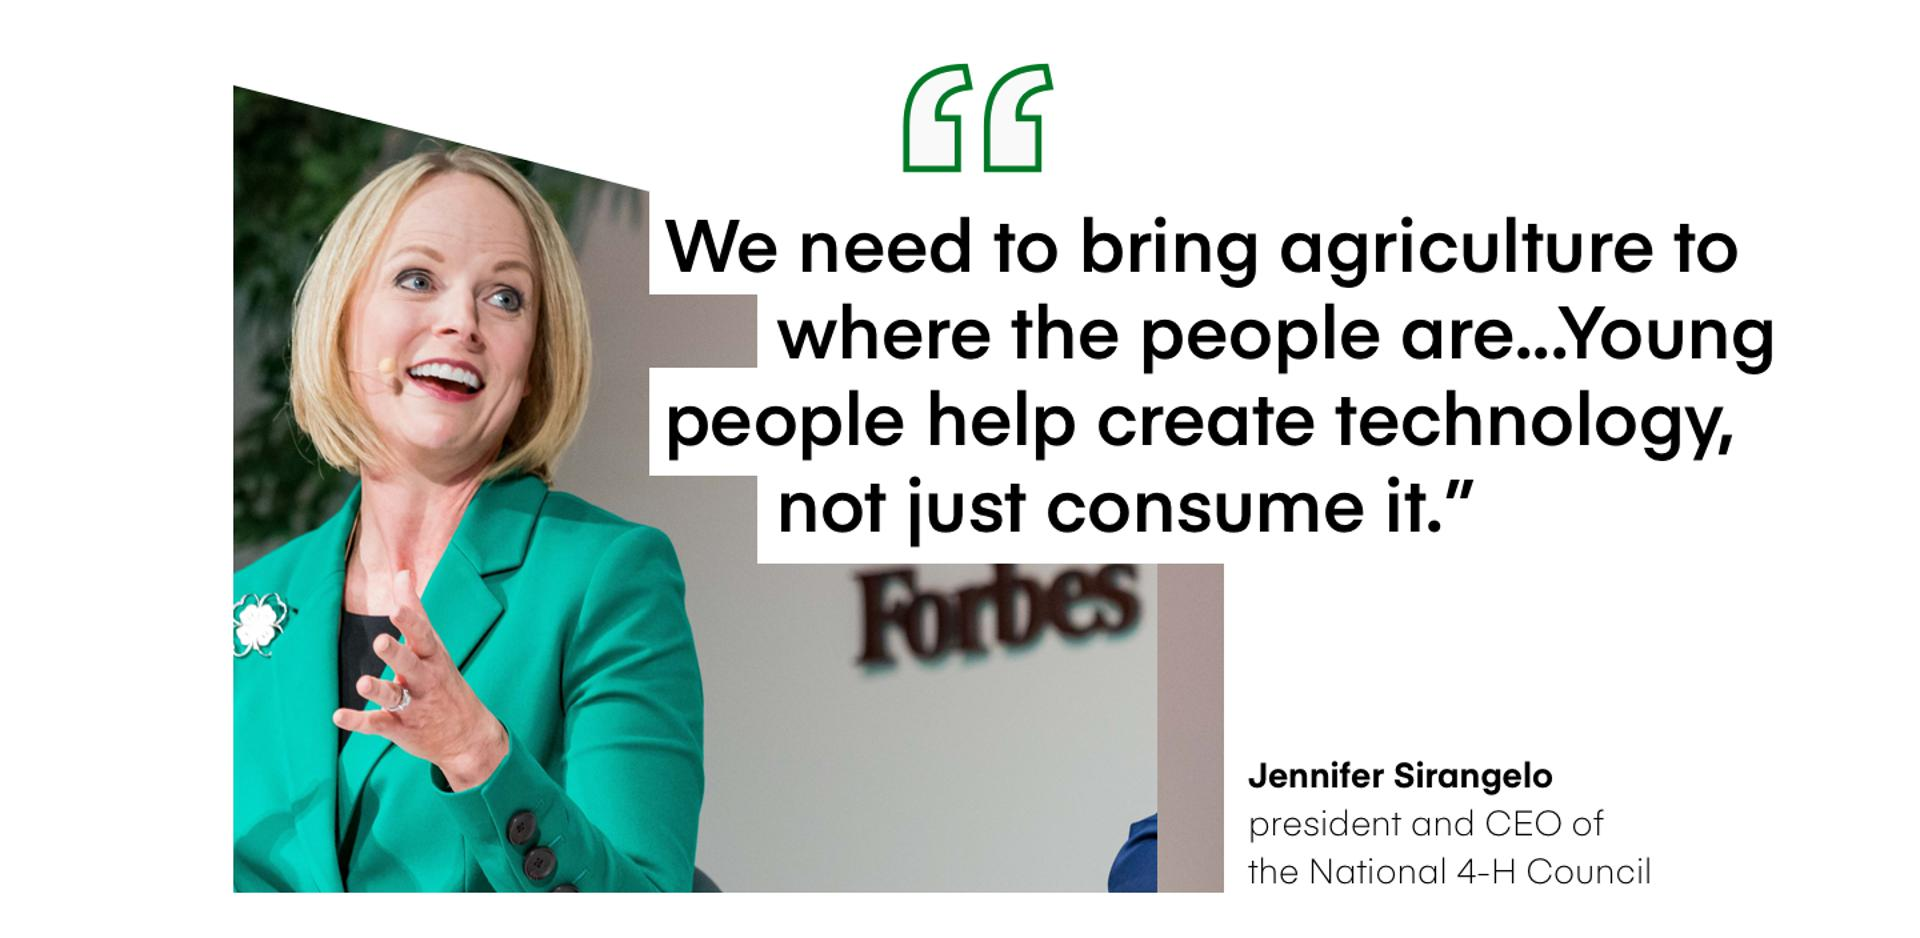 ″We need to bring agriculture to where the people are...Young people help create technology, not just consume it.″